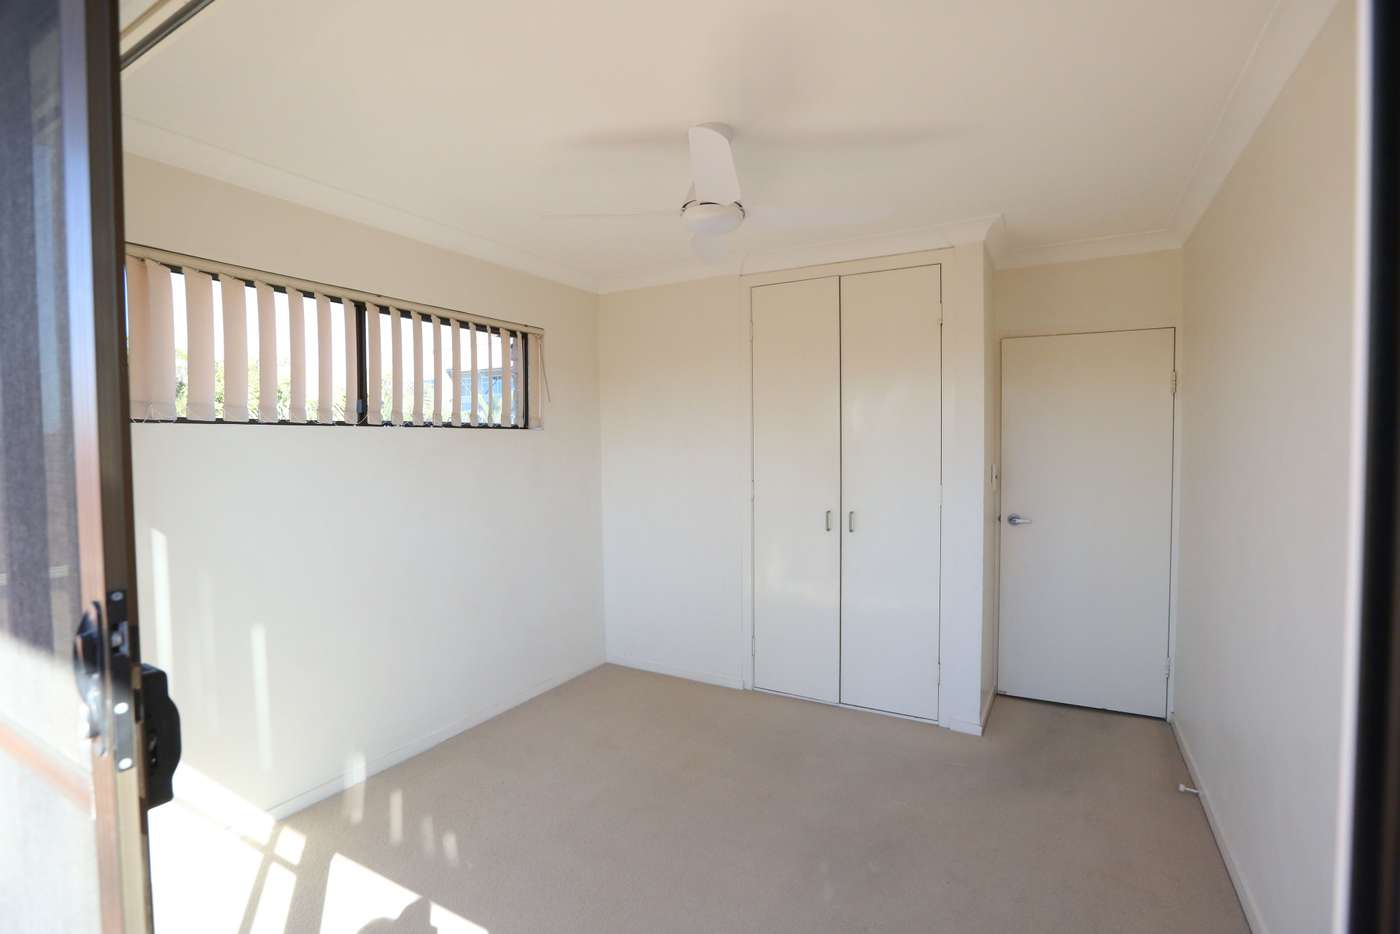 Sixth view of Homely unit listing, 6/30 Hilltop Avenue, Chermside QLD 4032